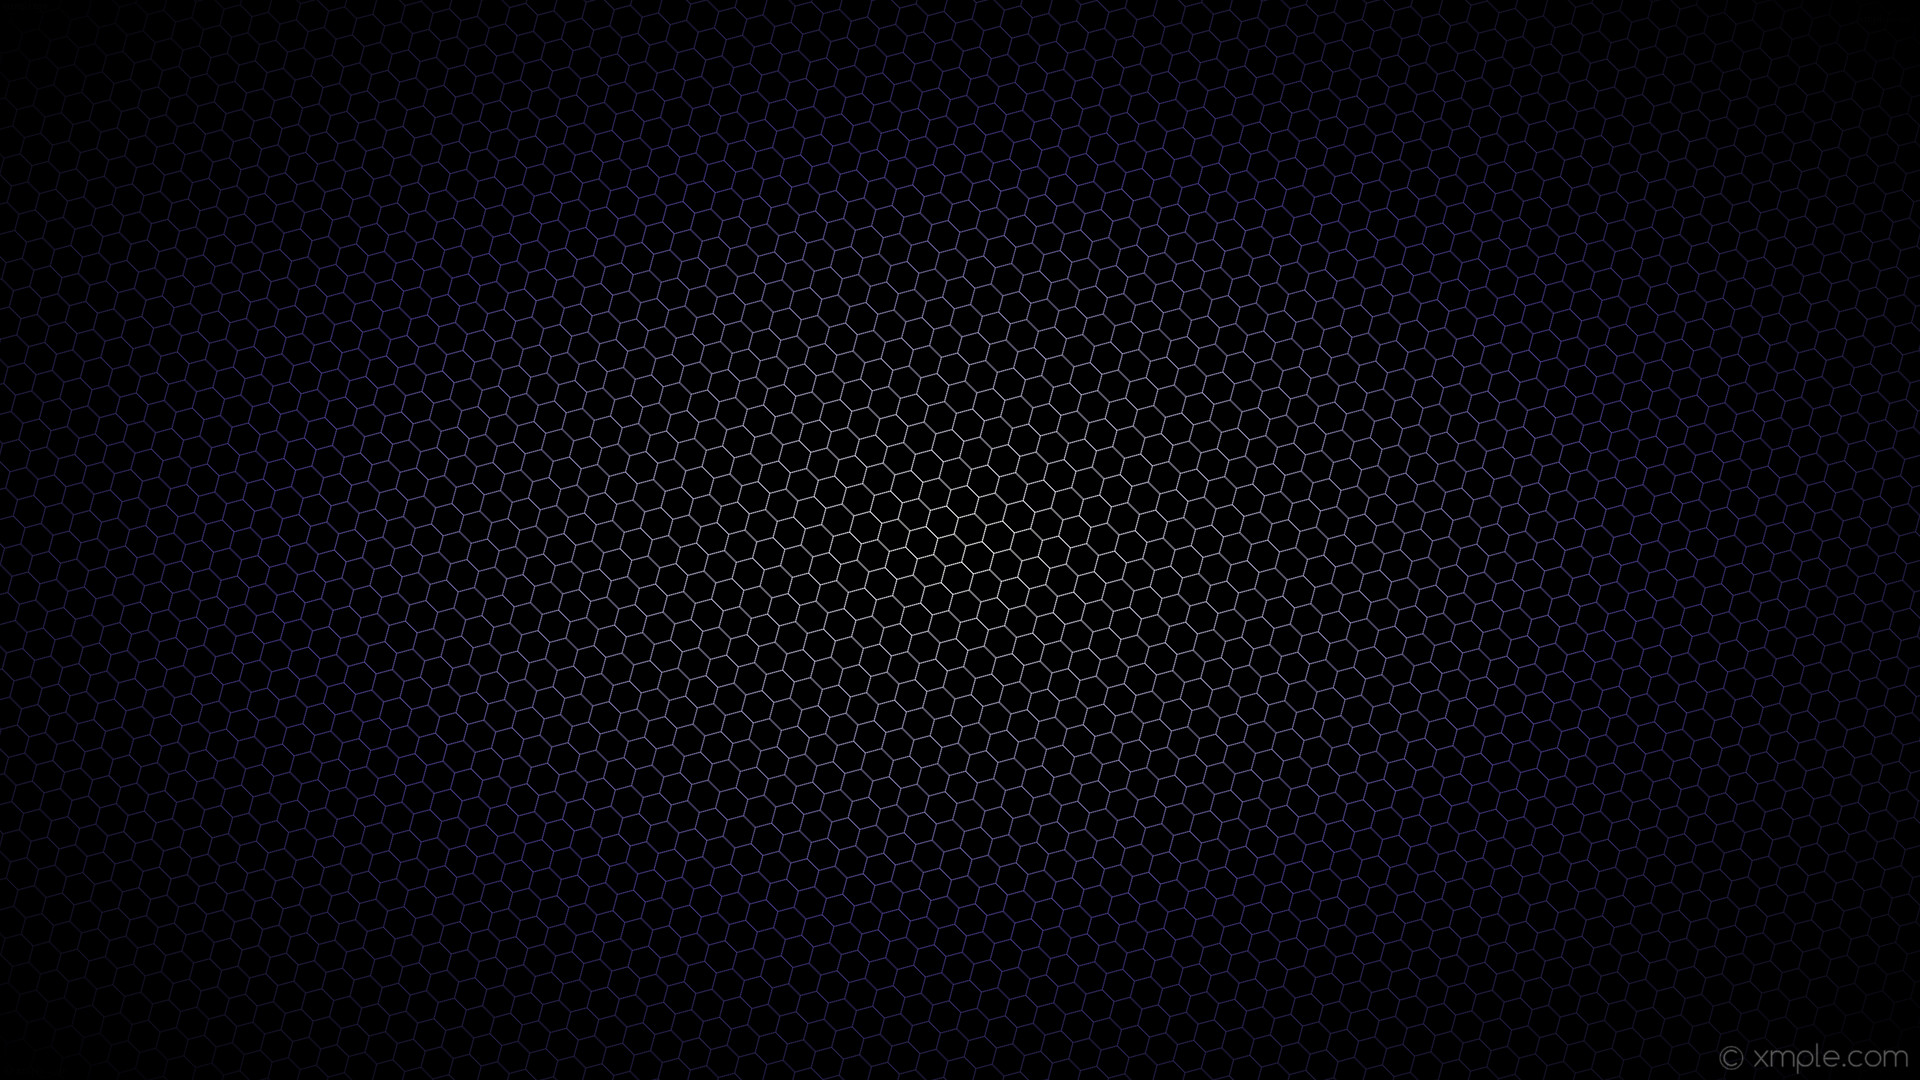 wallpaper black white hexagon purple glow gradient dark slate blue #000000  #ffffff #483d8b